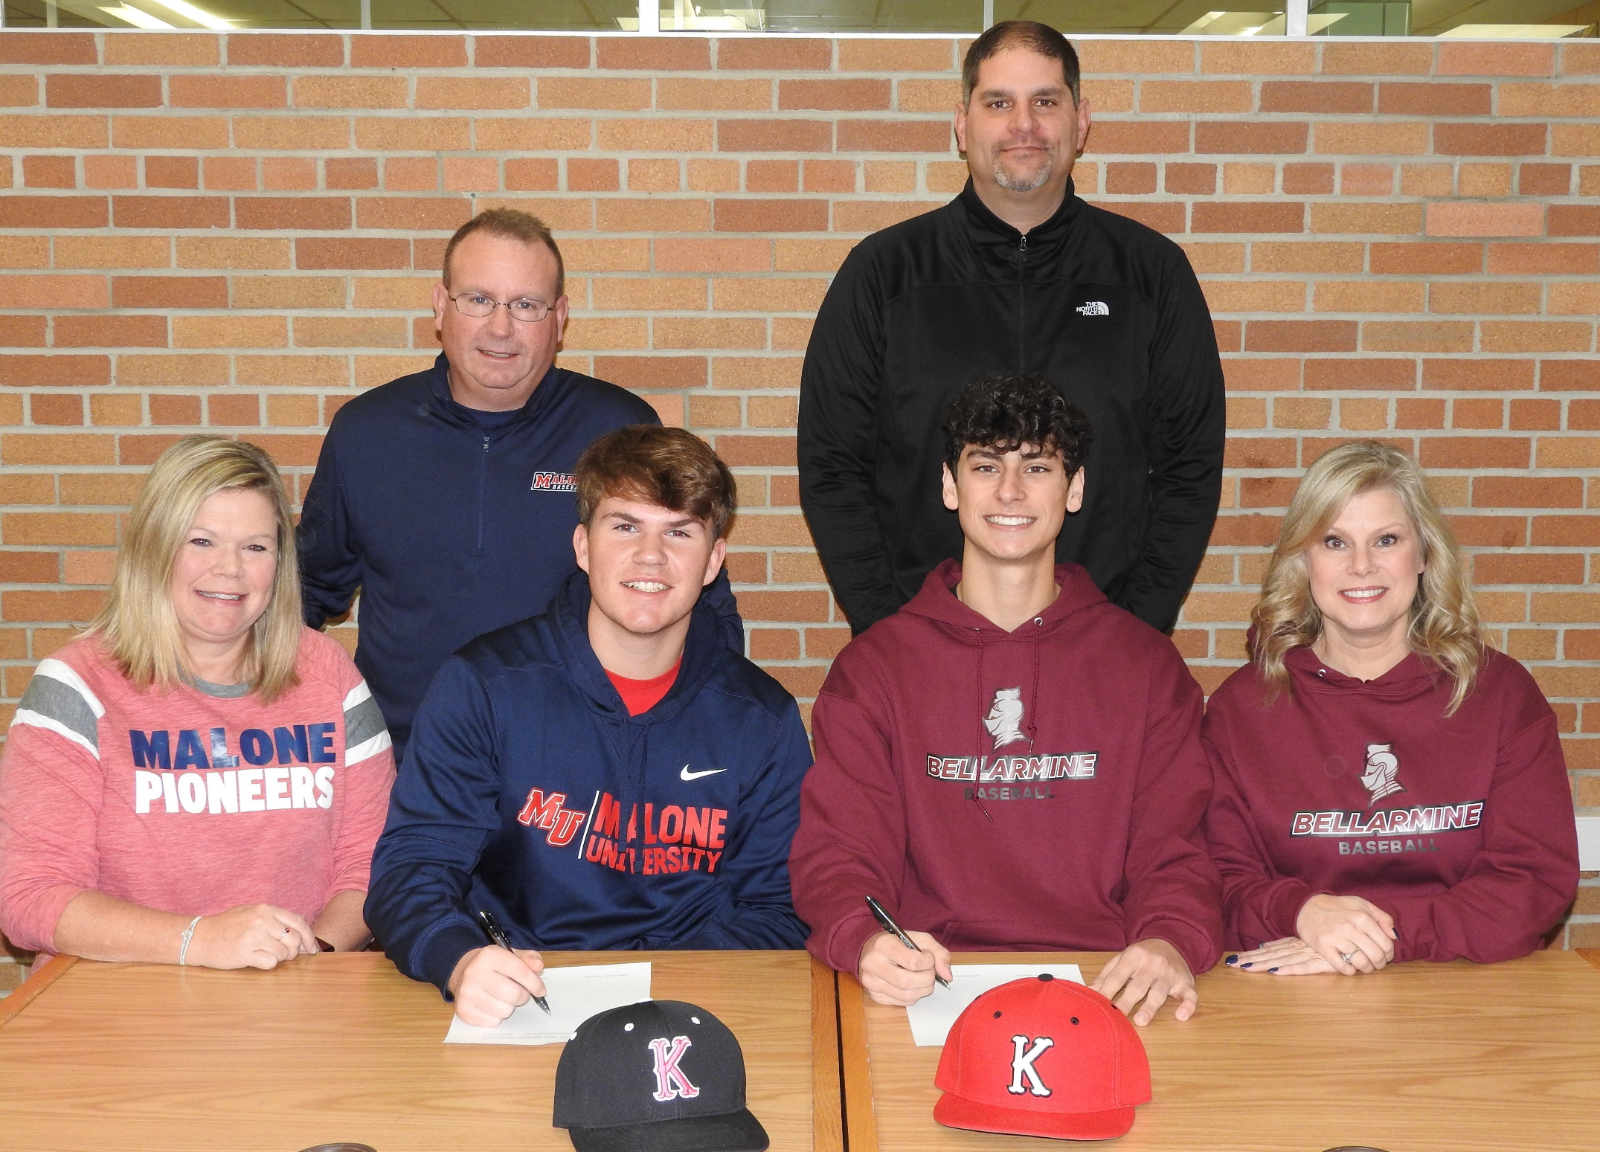 Common & Dile Commit to Playing Baseball at the College Level